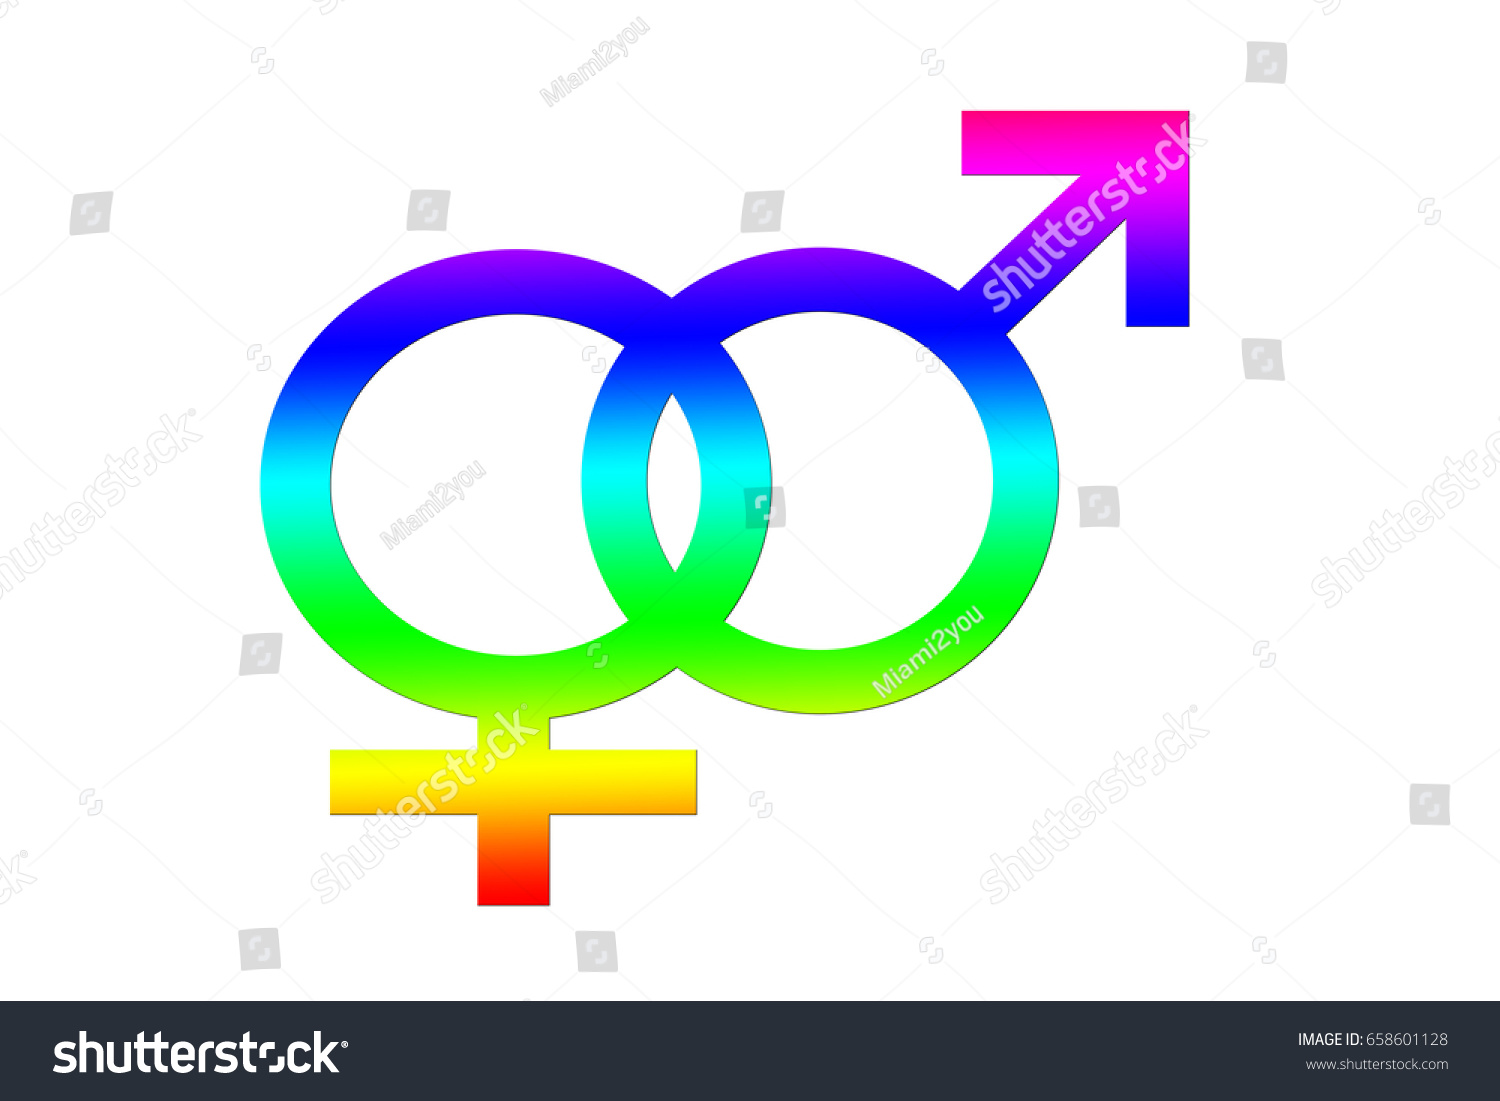 Royalty Free Stock Illustration Of Male Female Symbols Boy Girl